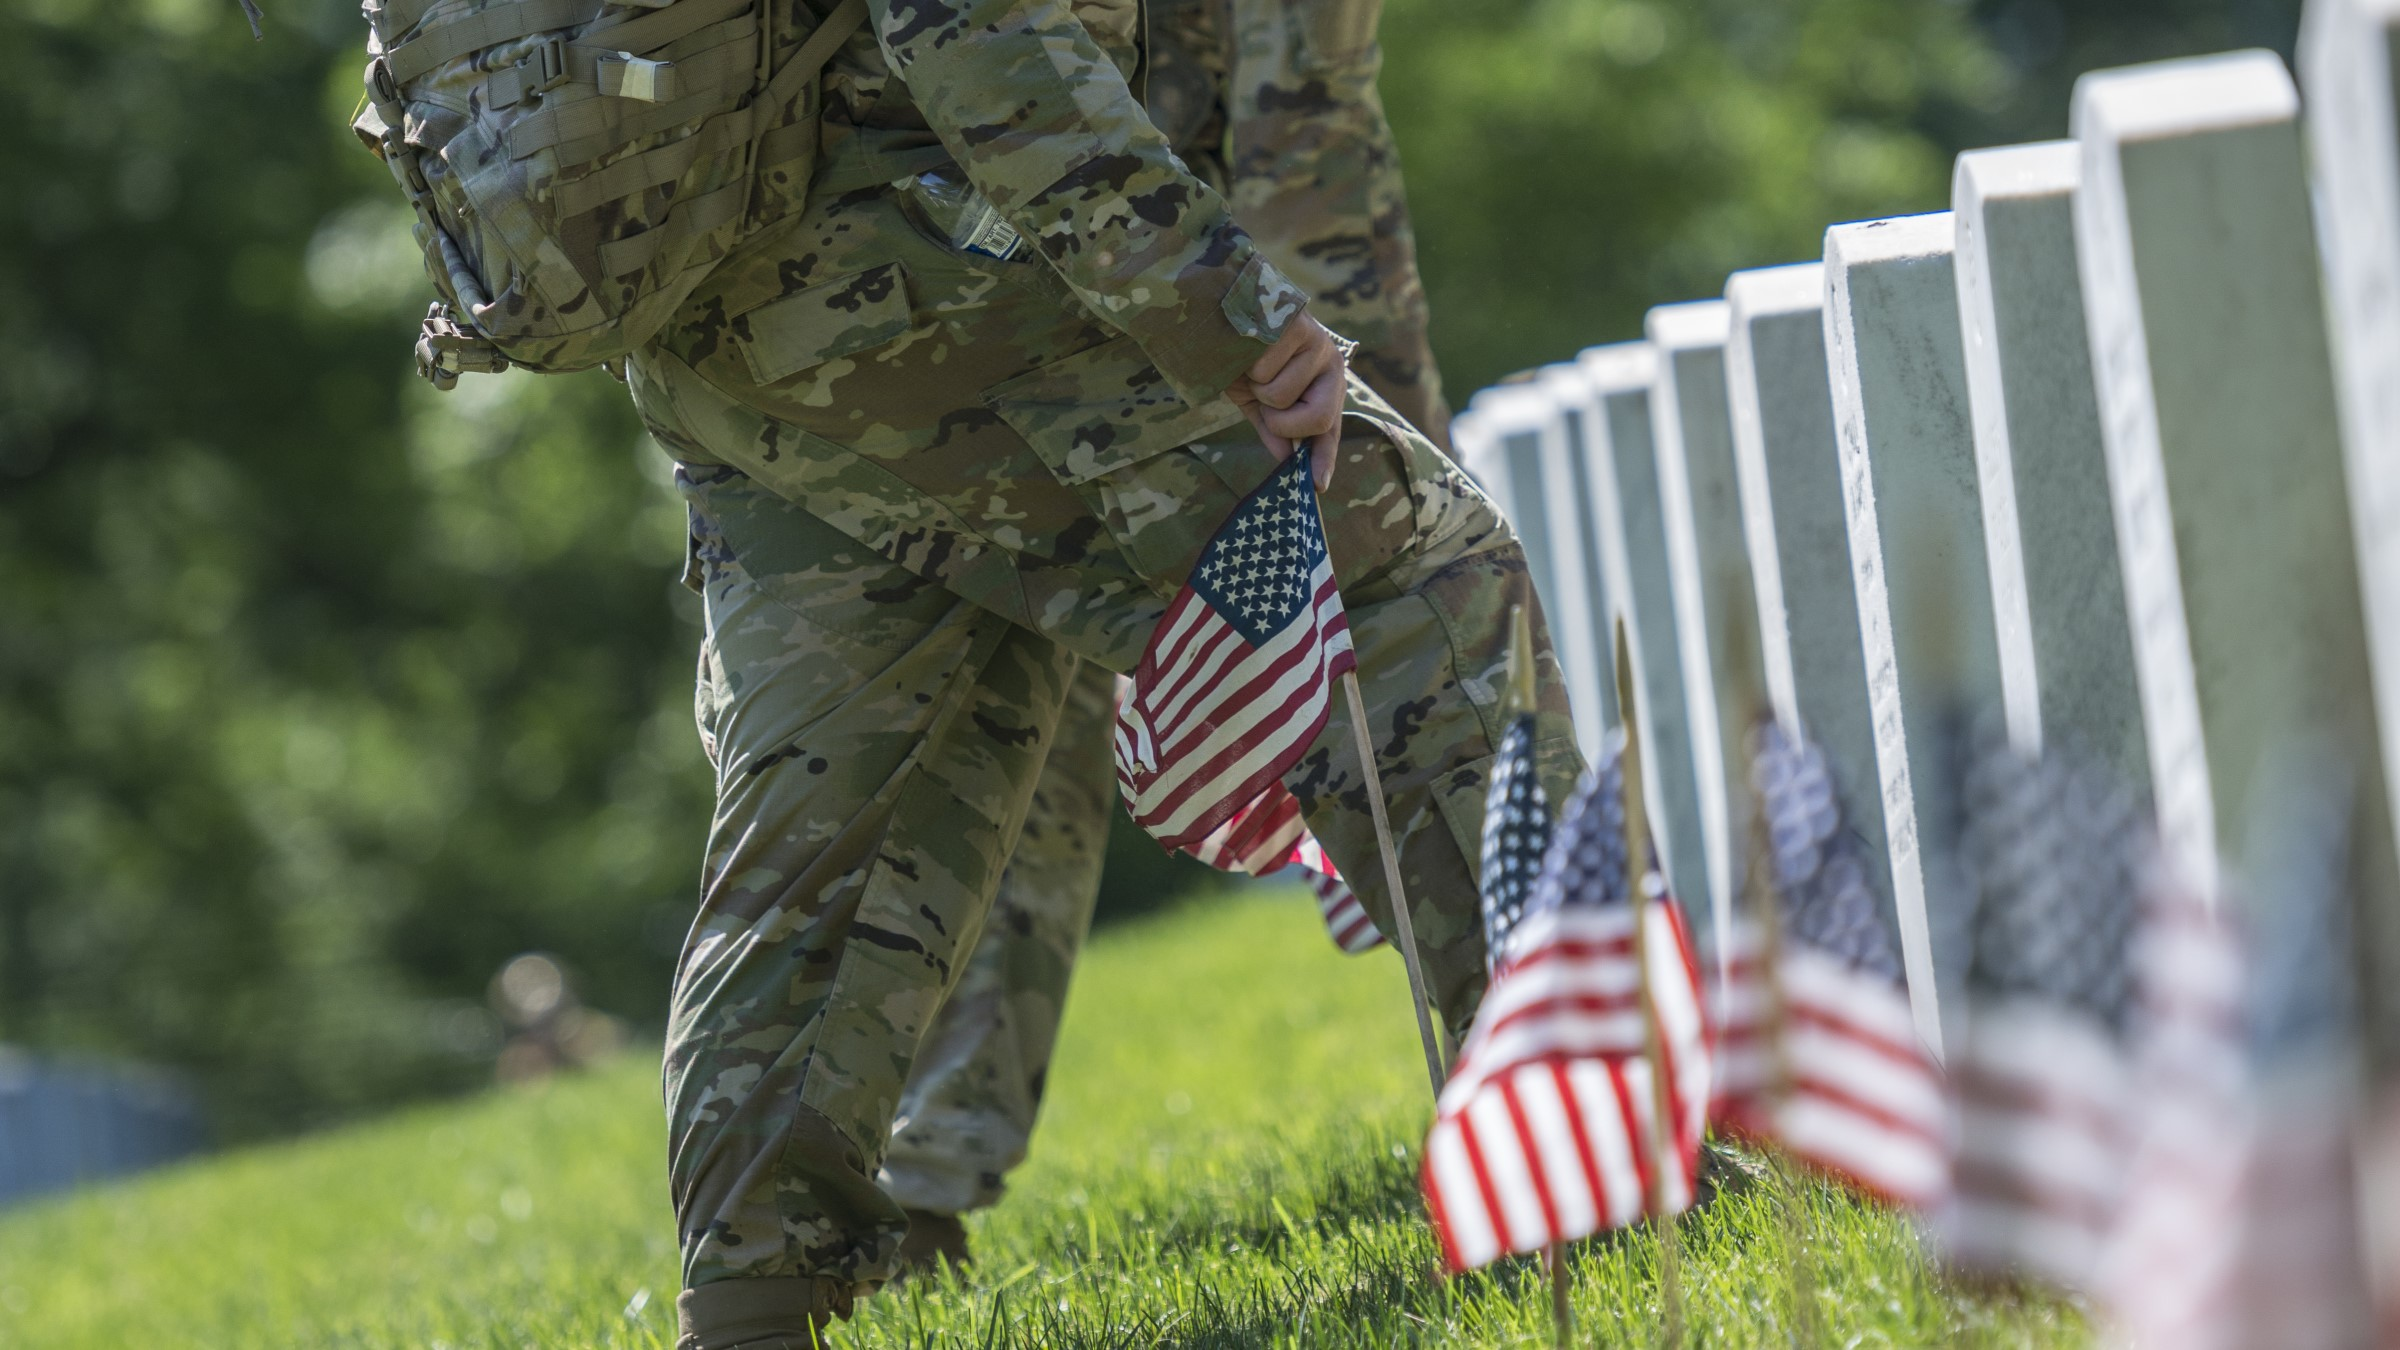 Soldiers place U.S. flags in headstones at Arlington National Cemetery, VA.